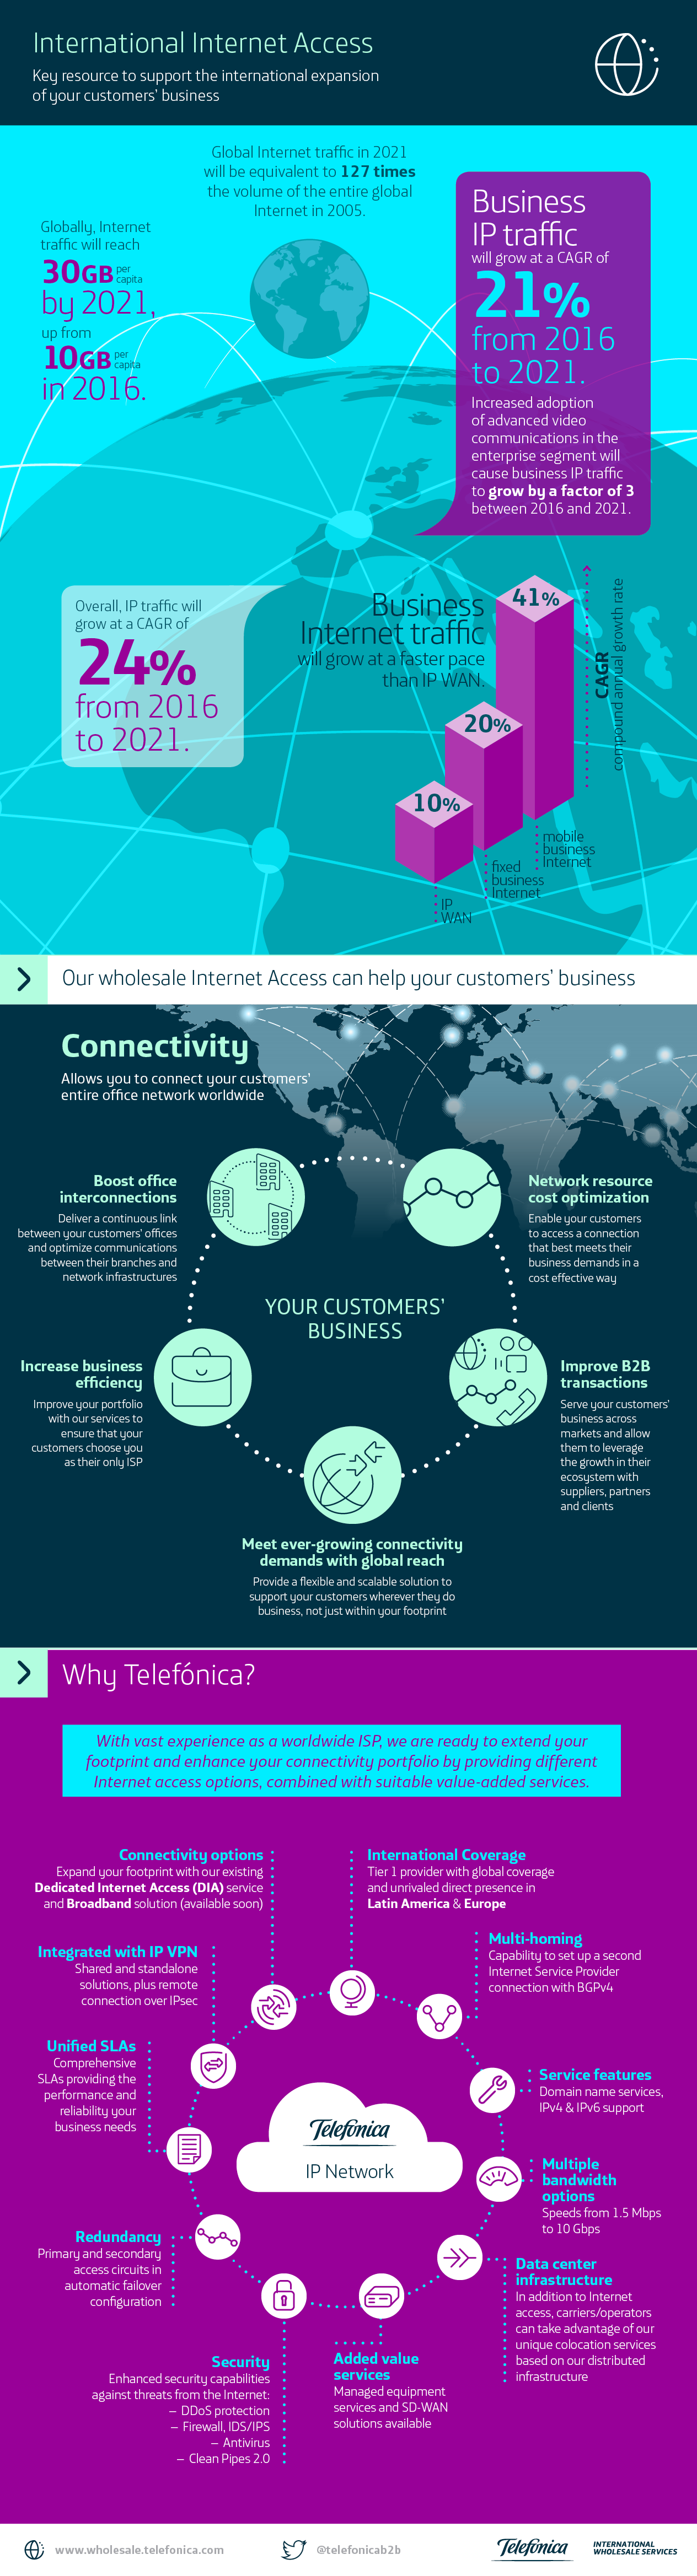 International Internet Access: Support the international expansion of your customers' business